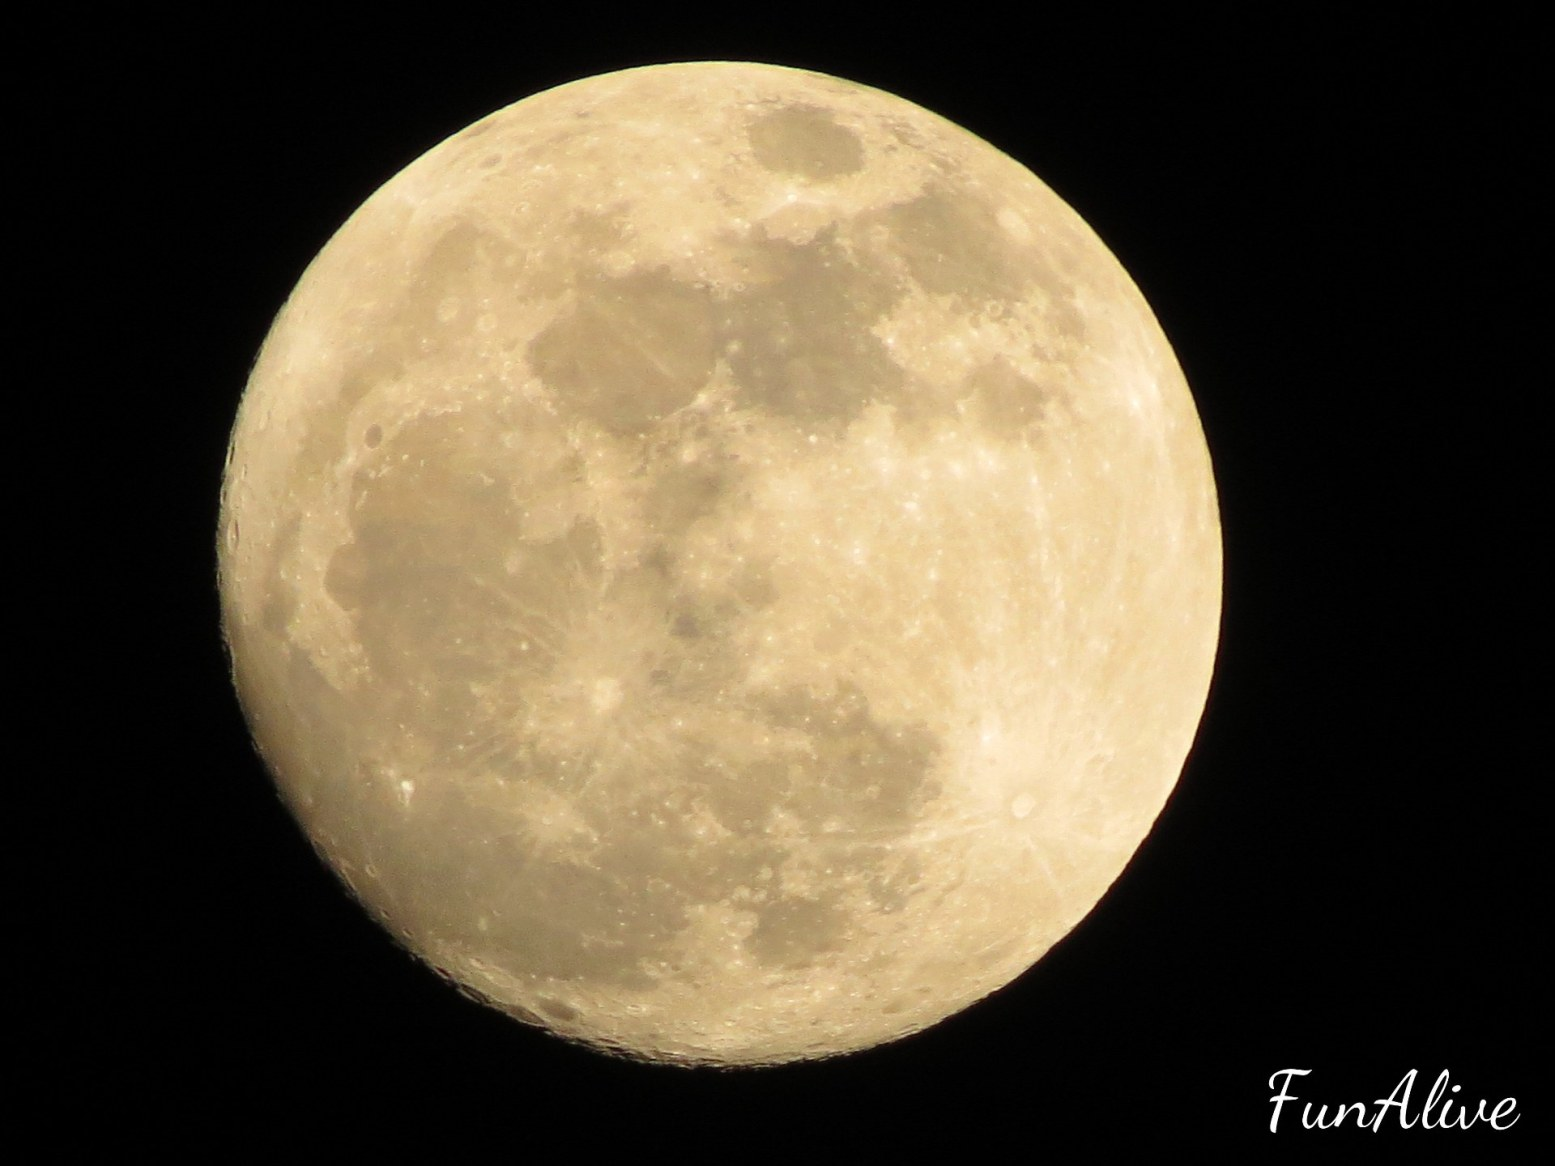 Supermoon -  Giant supermoon will be biggest & brightest since 1948